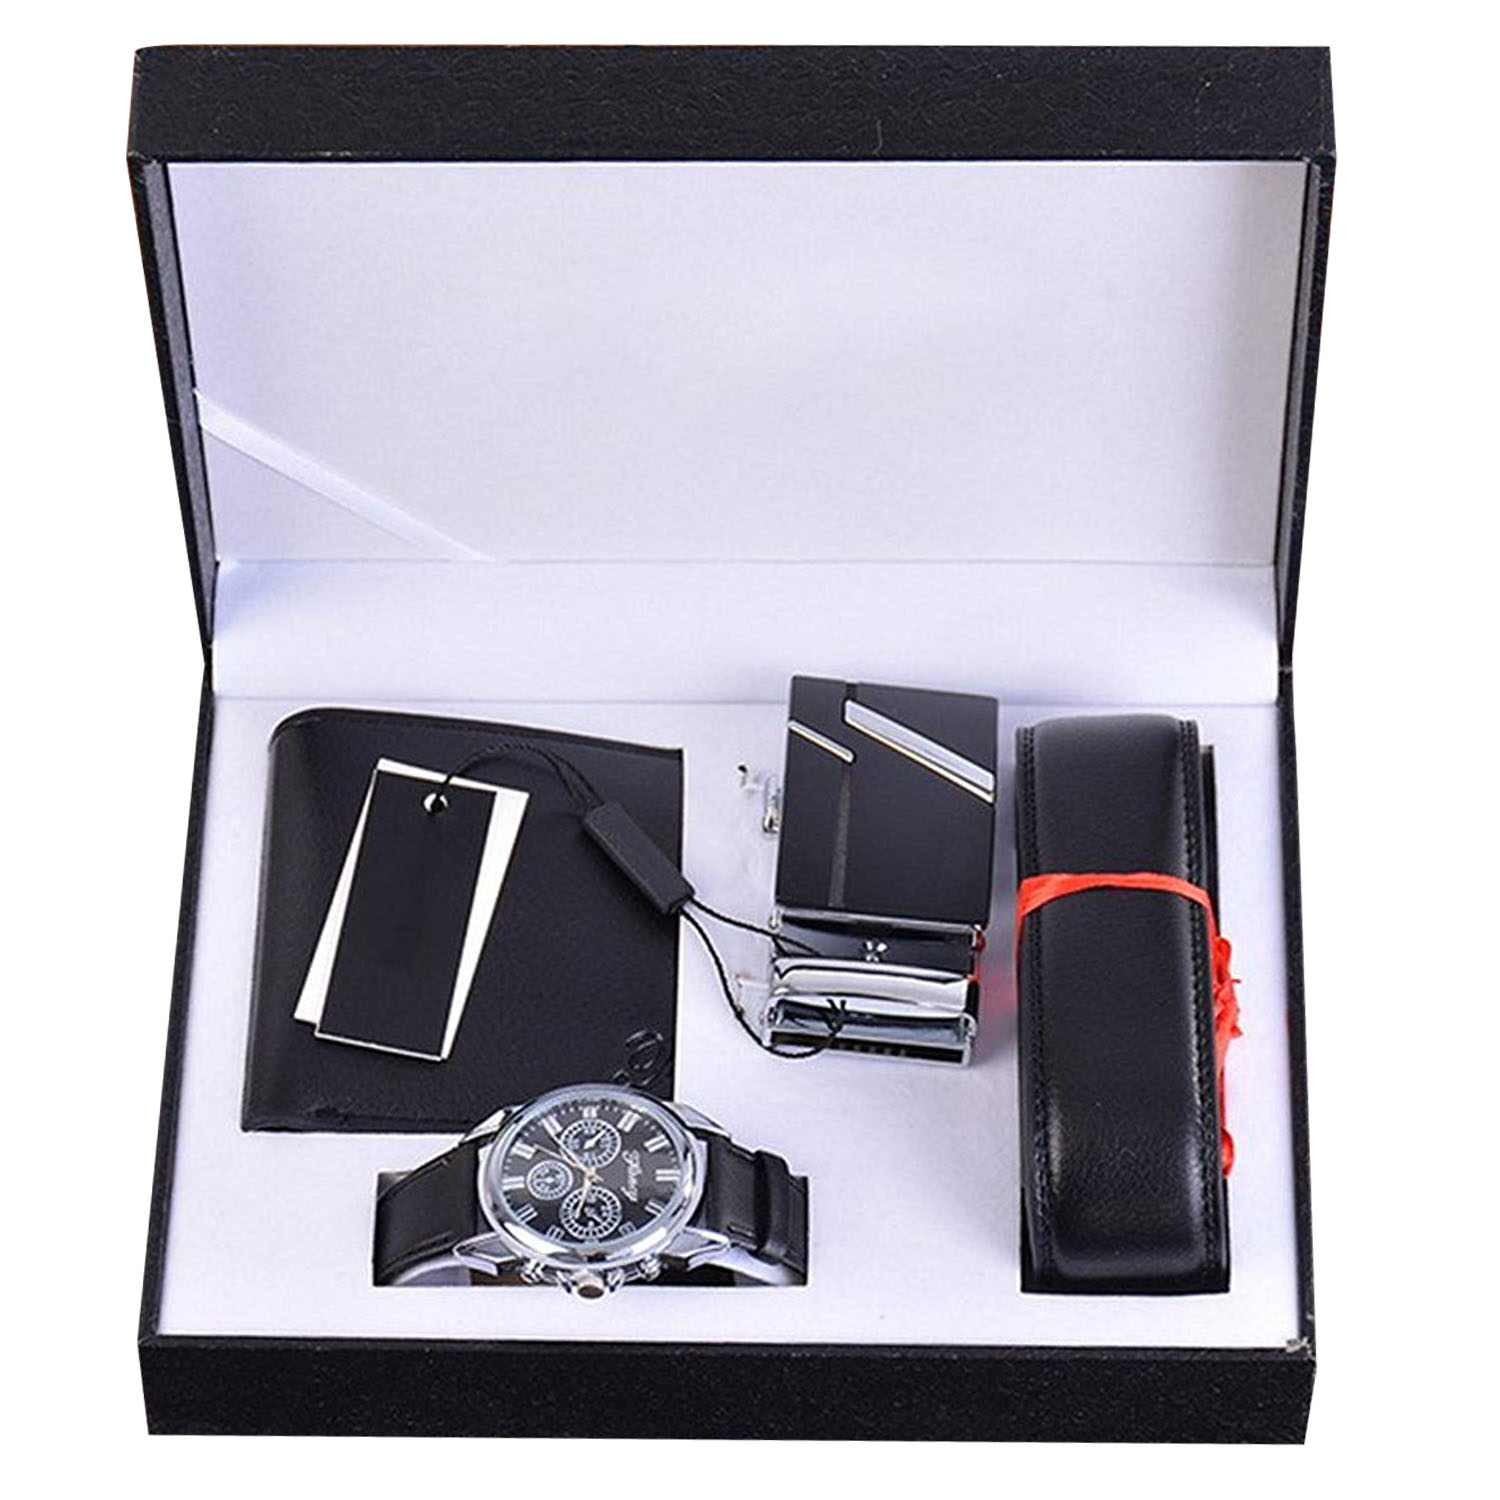 Mens Black Artificial Leather Quartz Analog Wrist Watch Belt Wallet Set with Box кольца